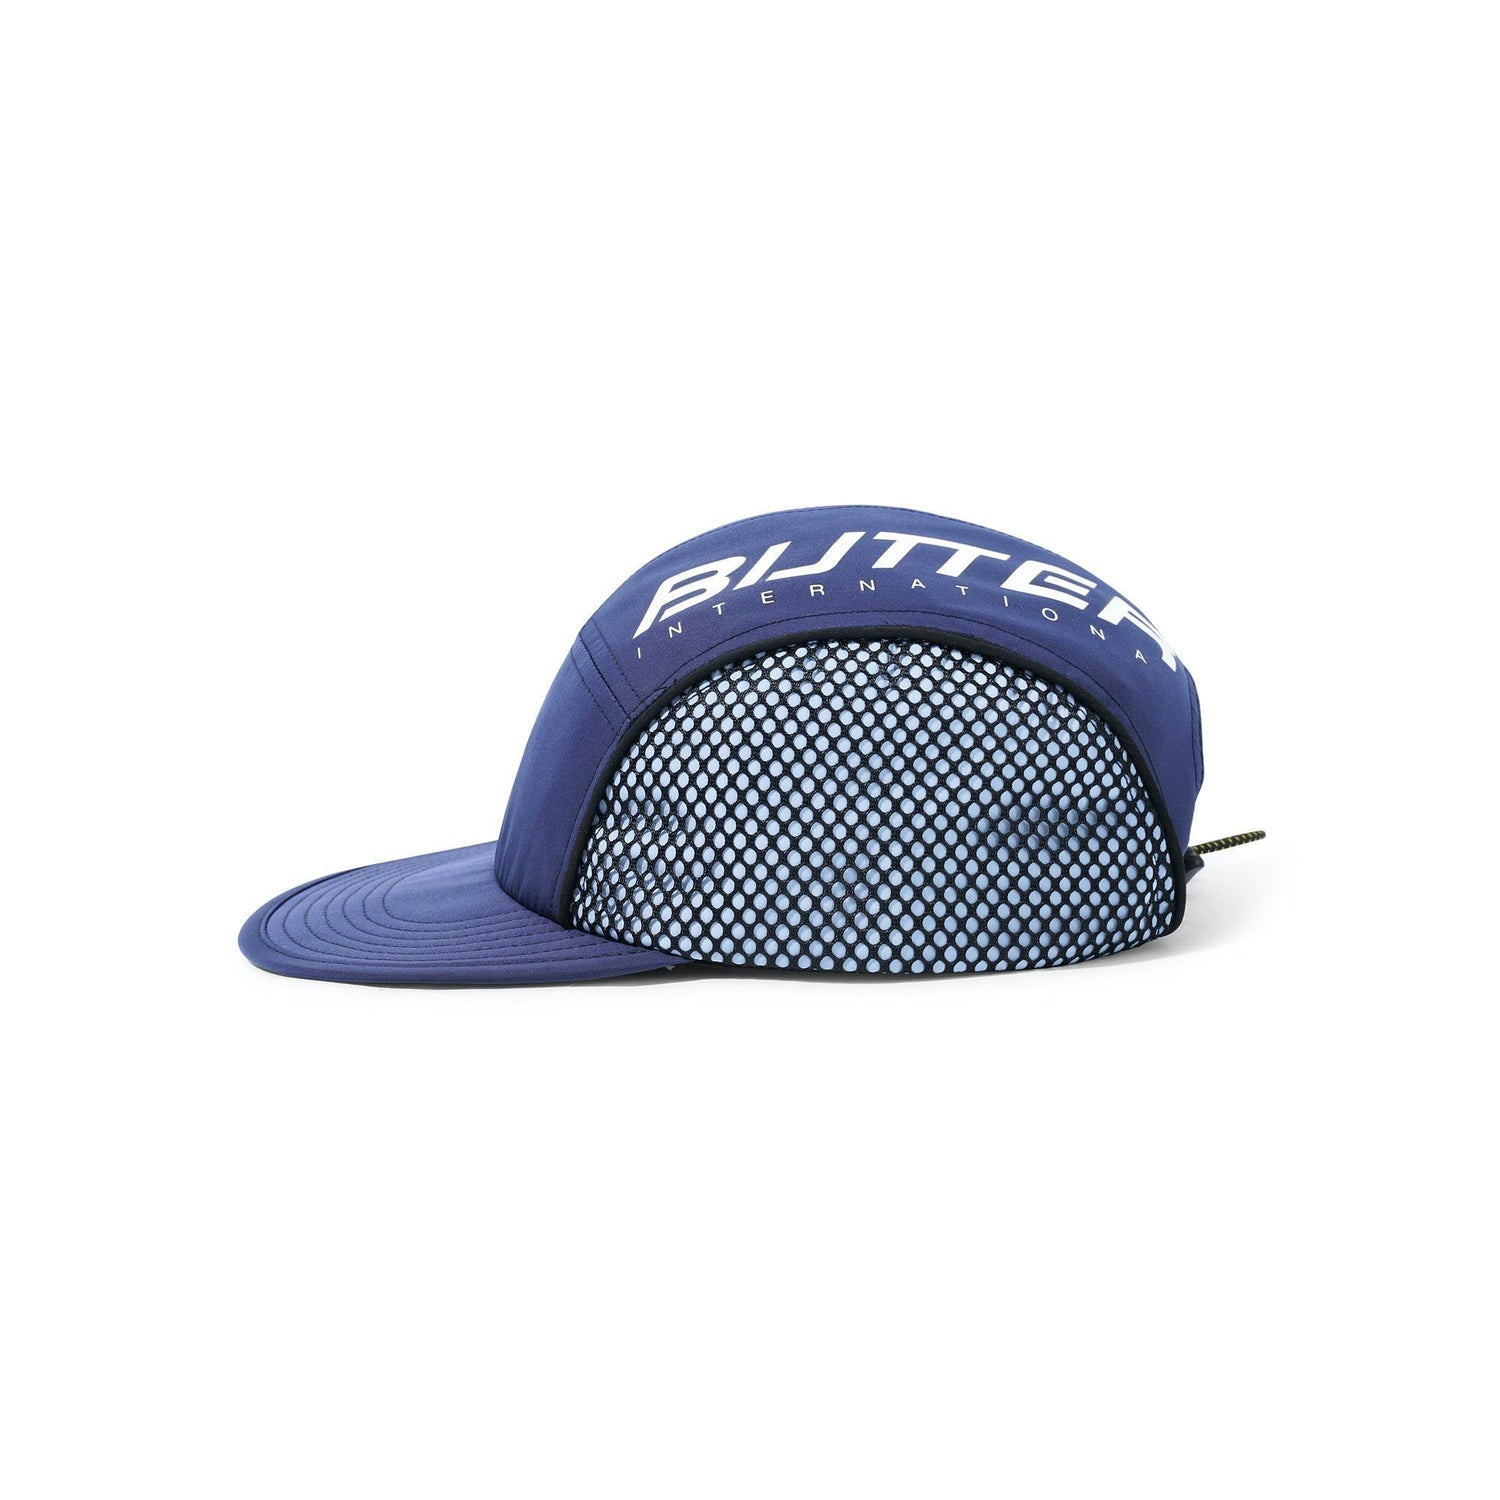 International Camp Cap, Navy